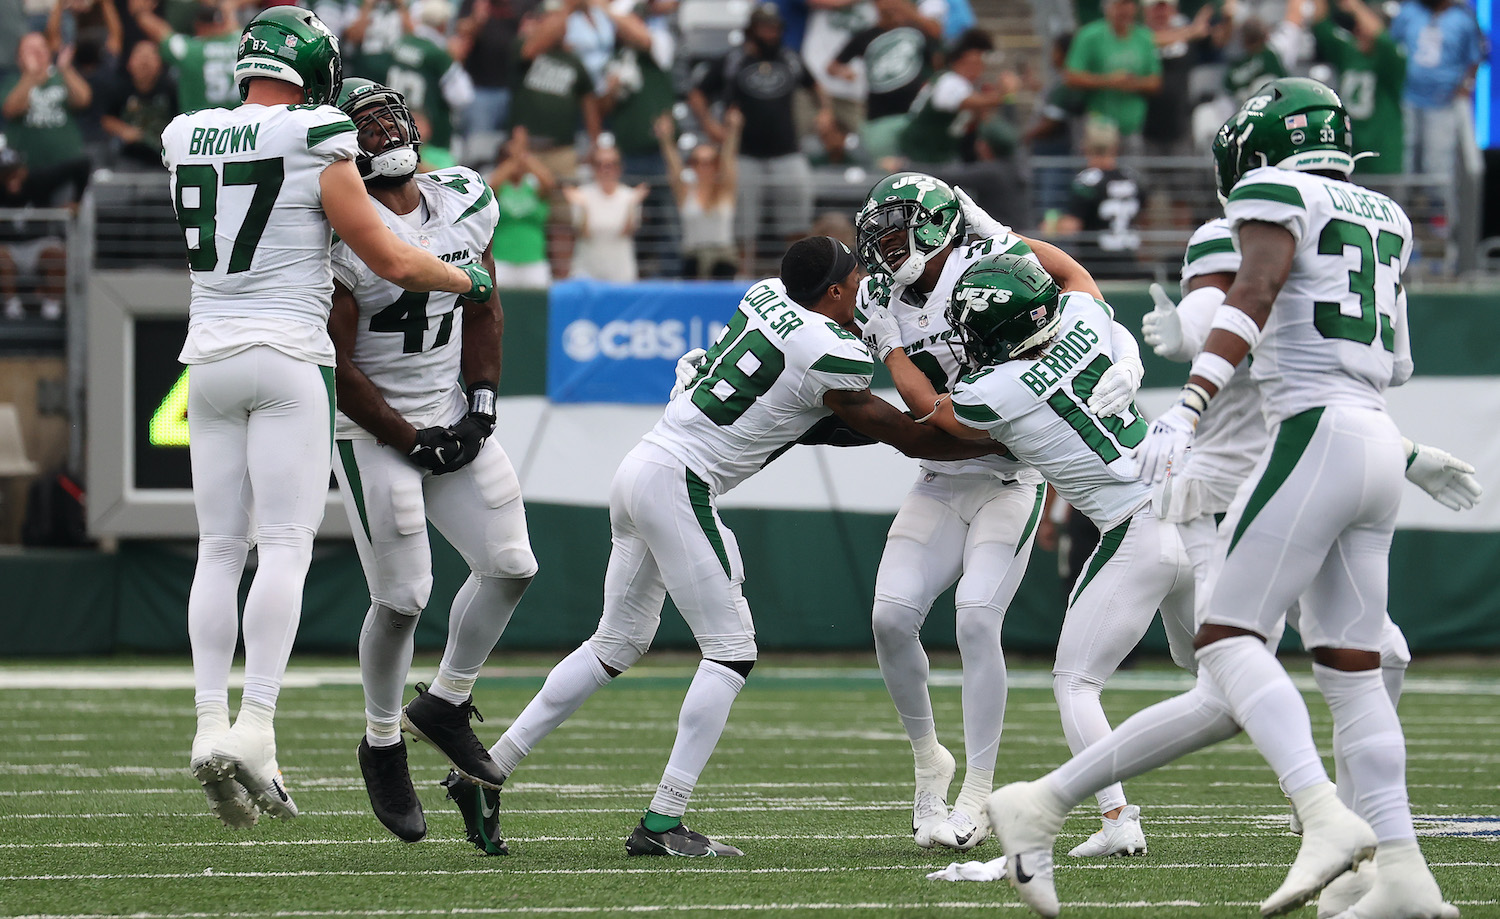 EAST RUTHERFORD, NEW JERSEY - OCTOBER 03: The New York Jets celebrate after defeating the Tennessee Titans 27-24 in overtime at MetLife Stadium on October 03, 2021 in East Rutherford, New Jersey. (Photo by Al Bello/Getty Images)